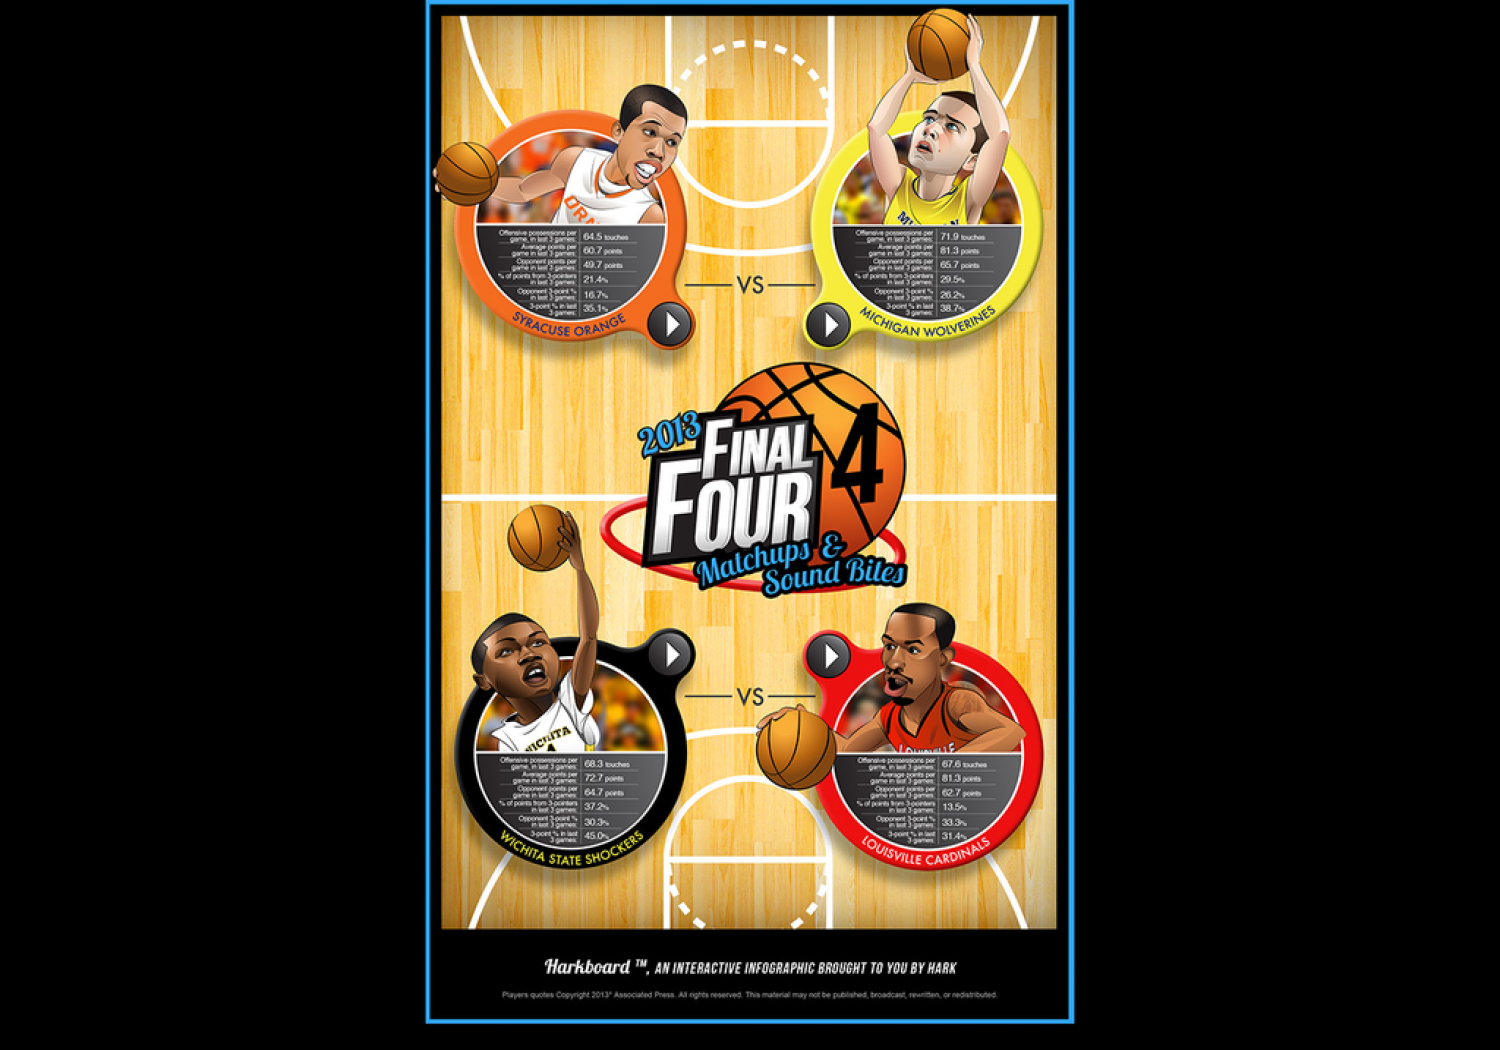 The Final Four Harkboard Infographic